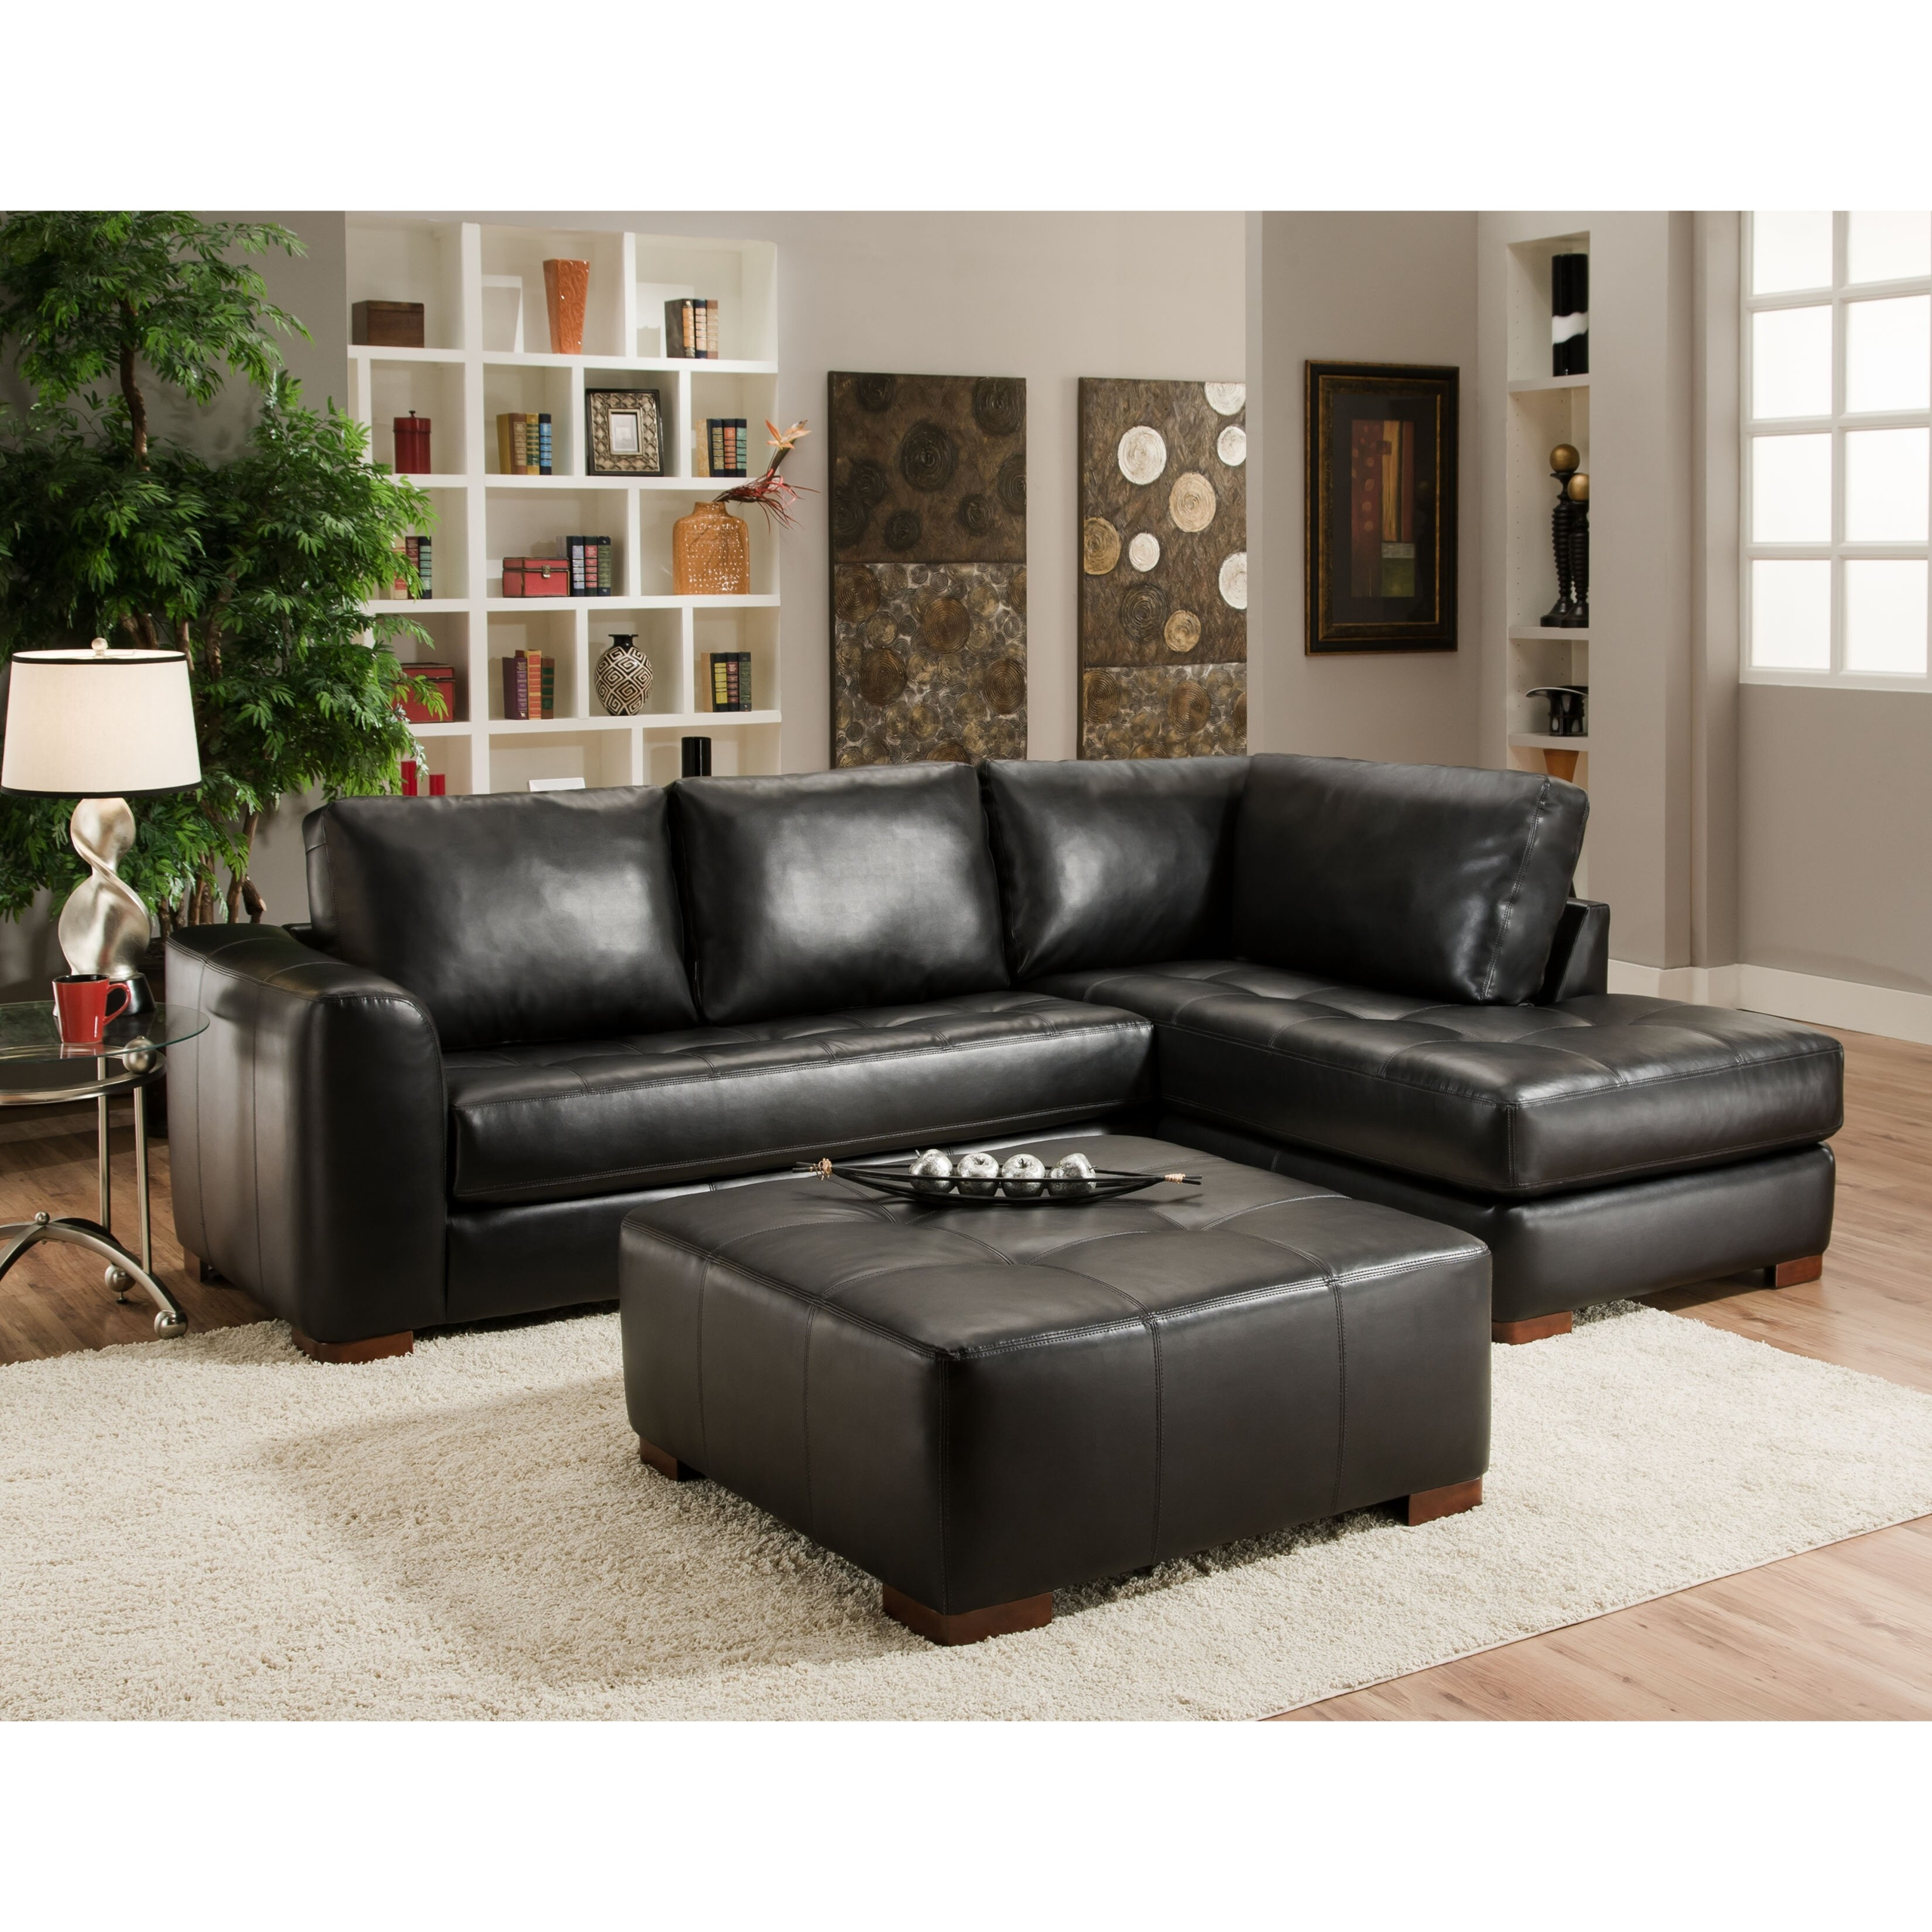 Good Small Leather Sofa With Chaise